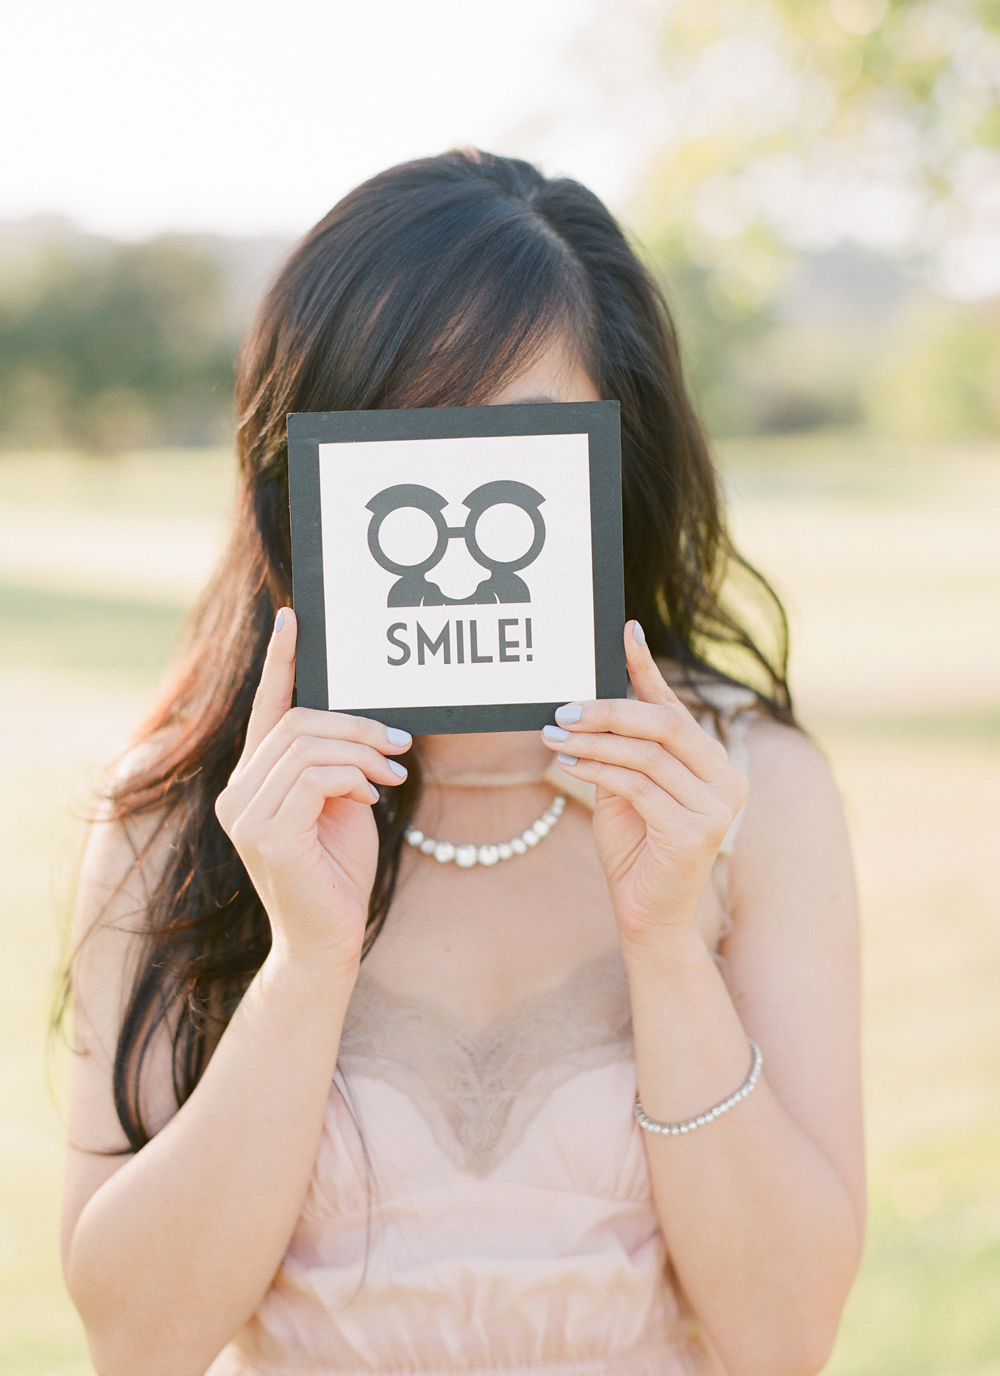 SMILE! Sign Used for Party Prop